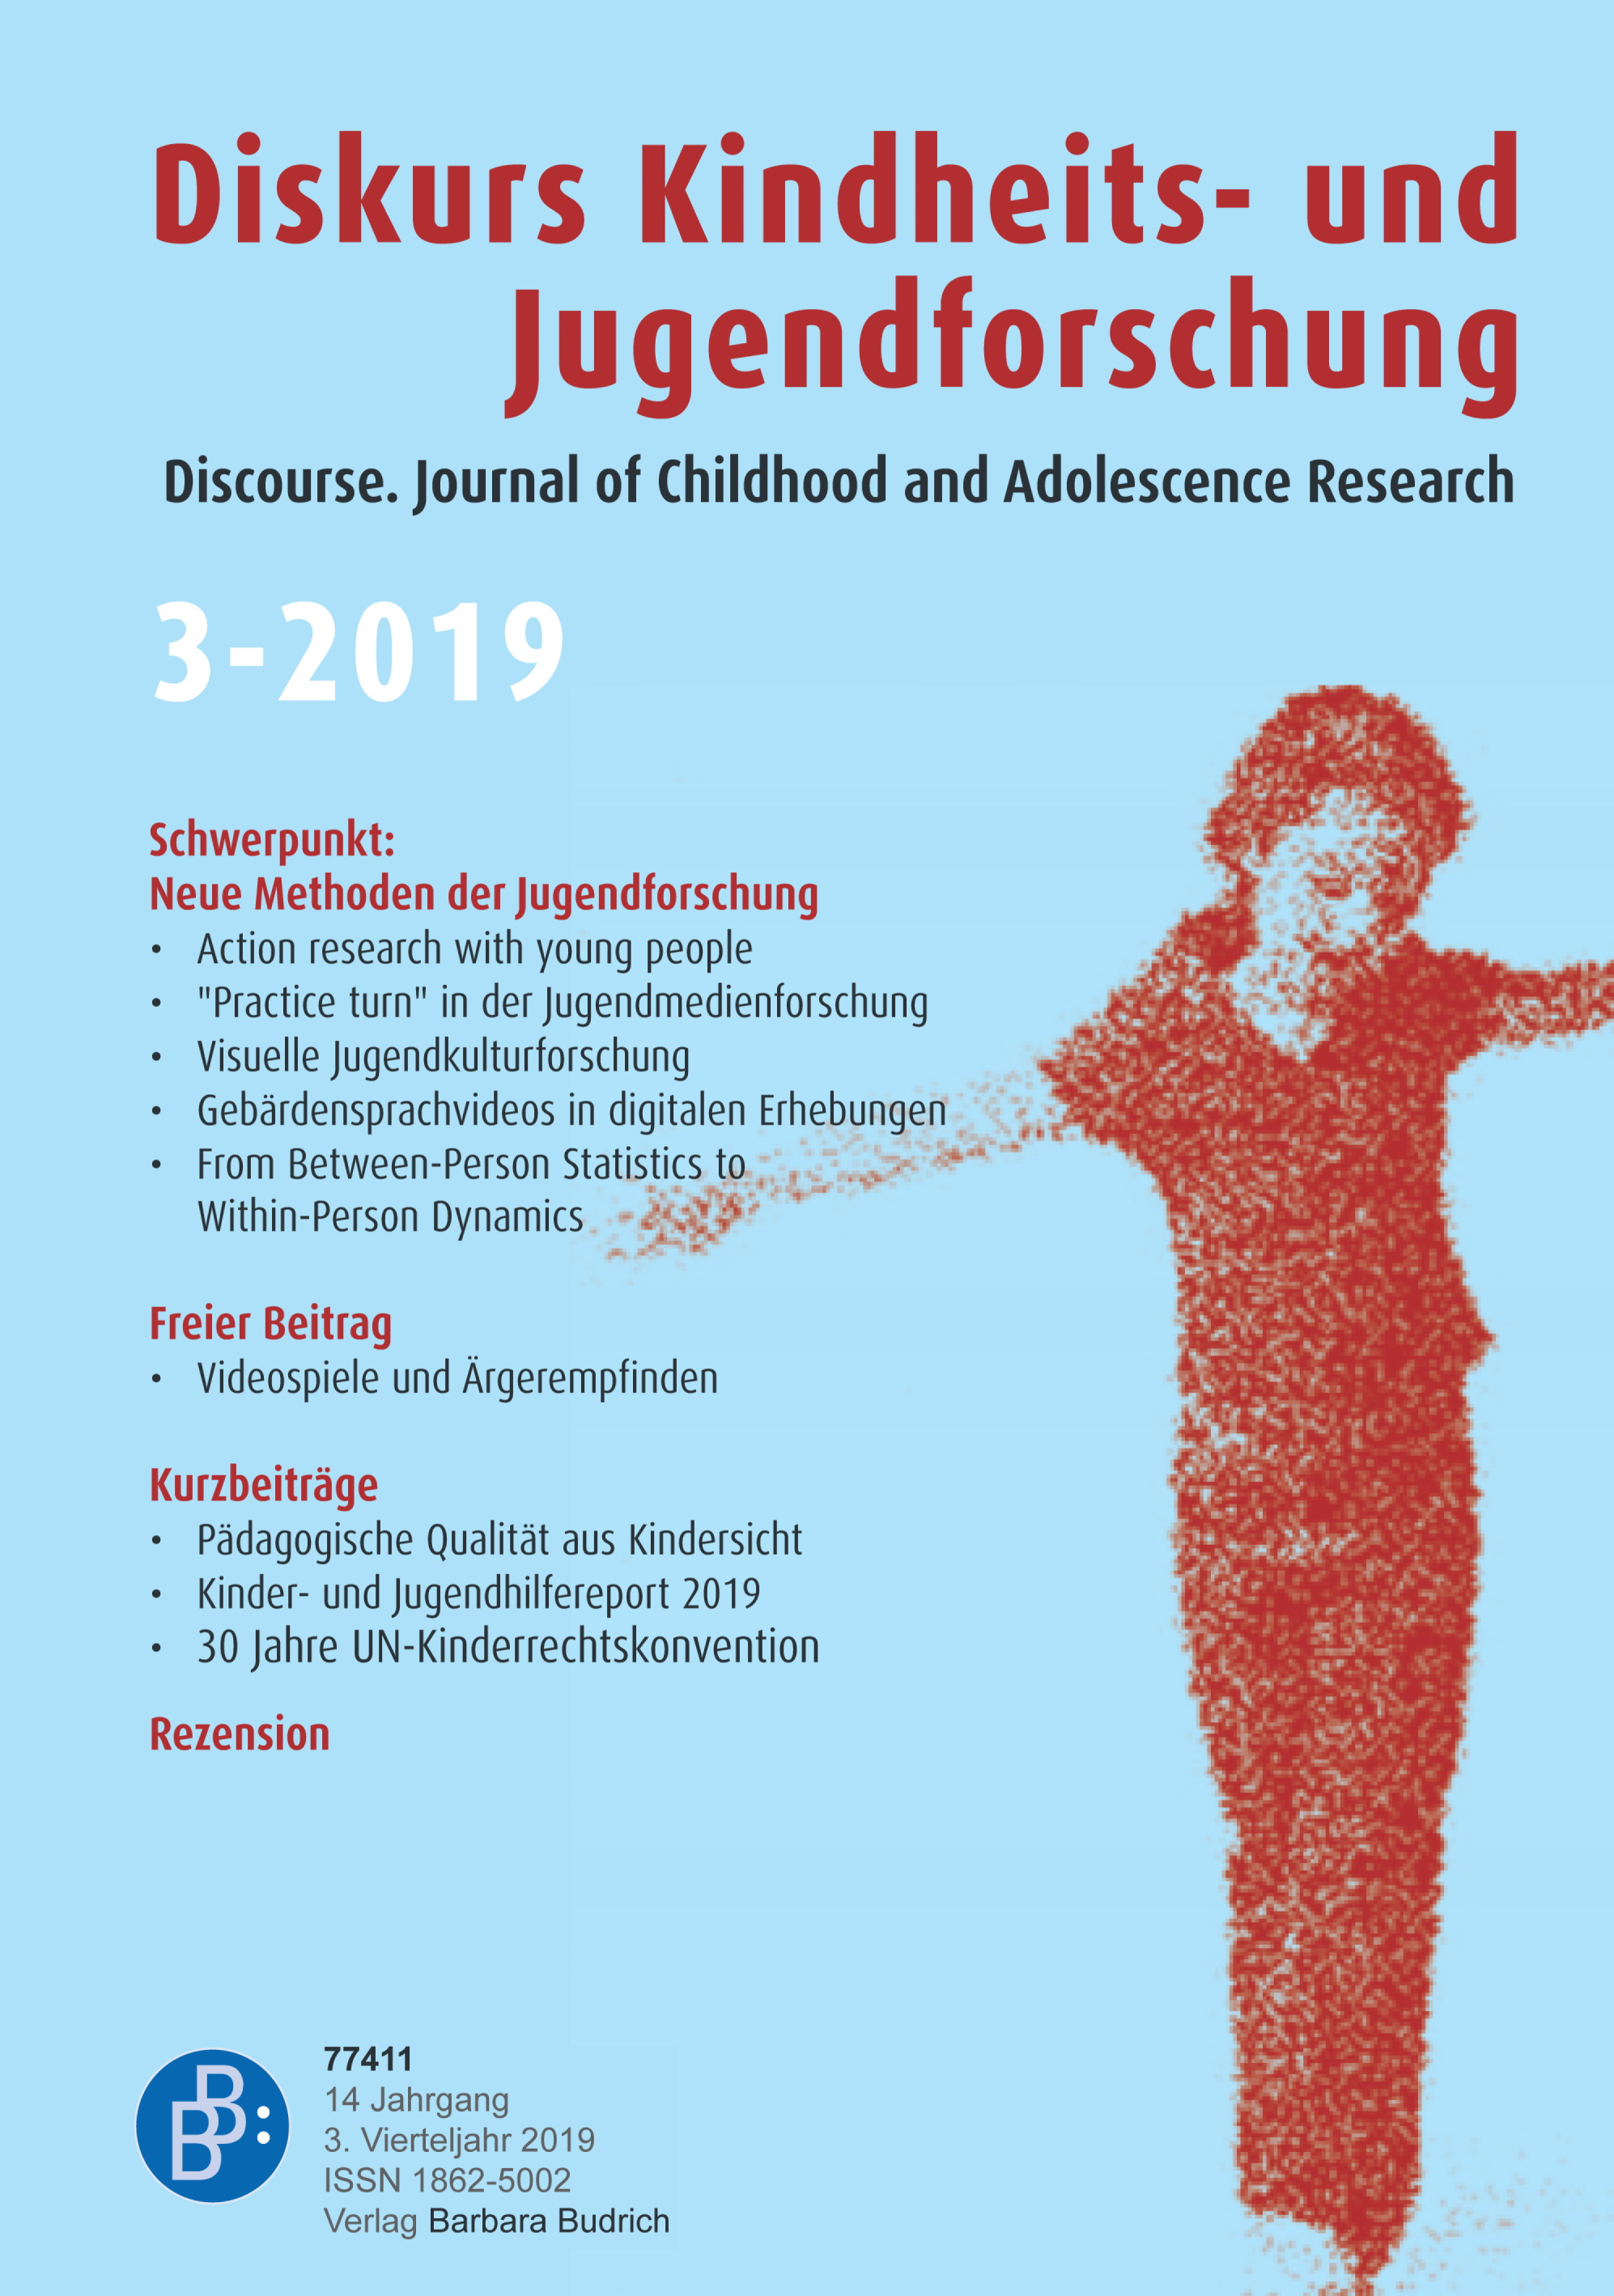 Diskurs Kindheits- und Jugendforschung / Discourse. Journal of Childhood and Adolescence Research 3-2019